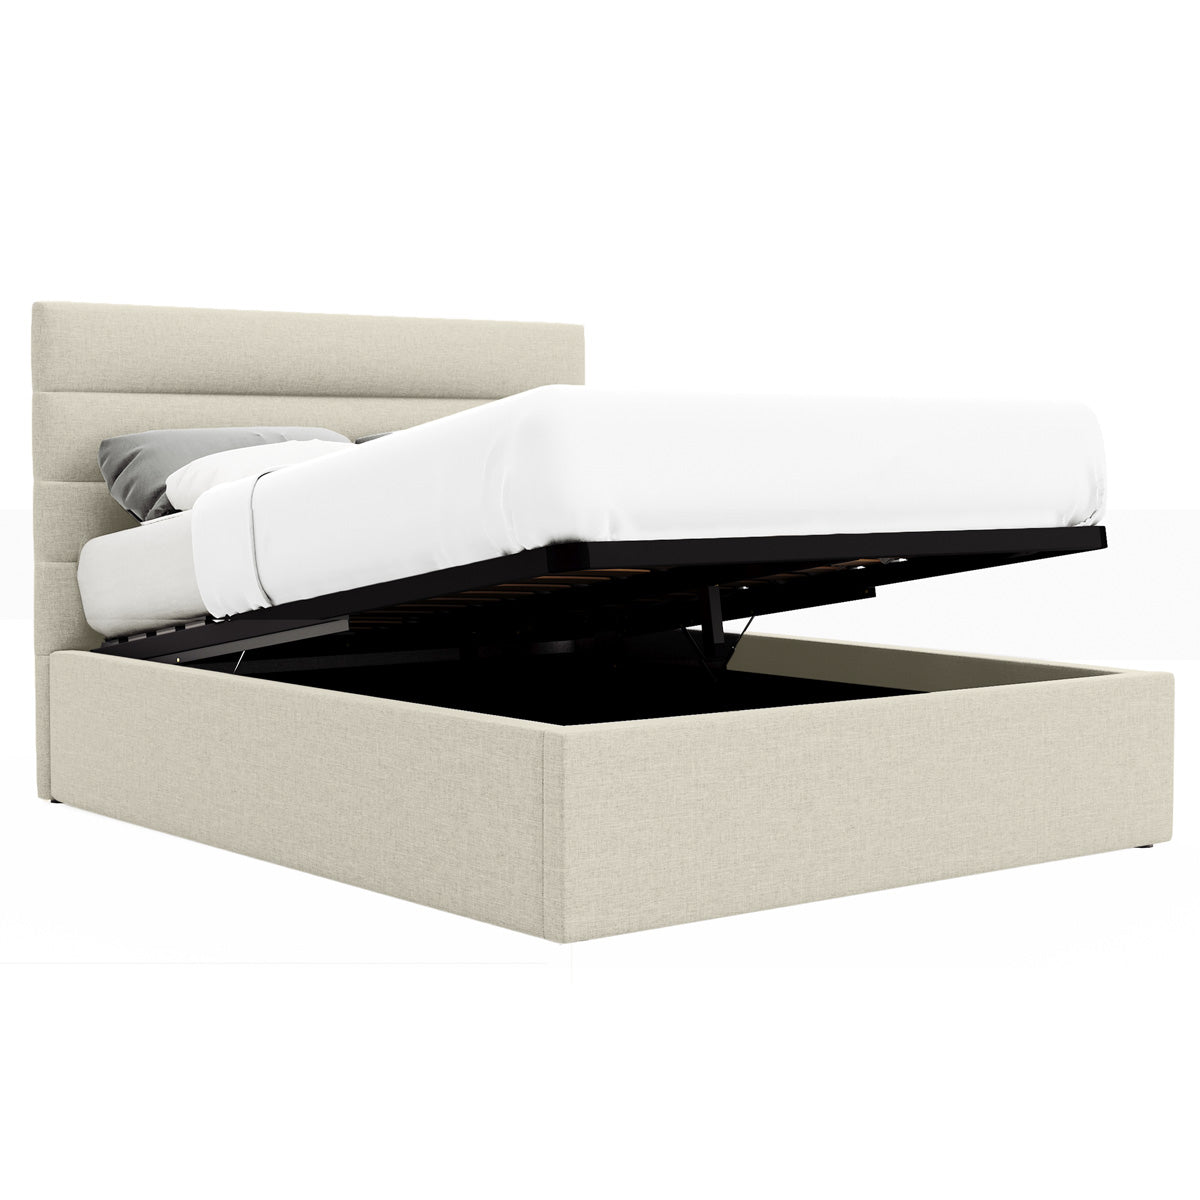 Benny Gas Lift Storage Bed Frame (Tuscan Beige Fabric)